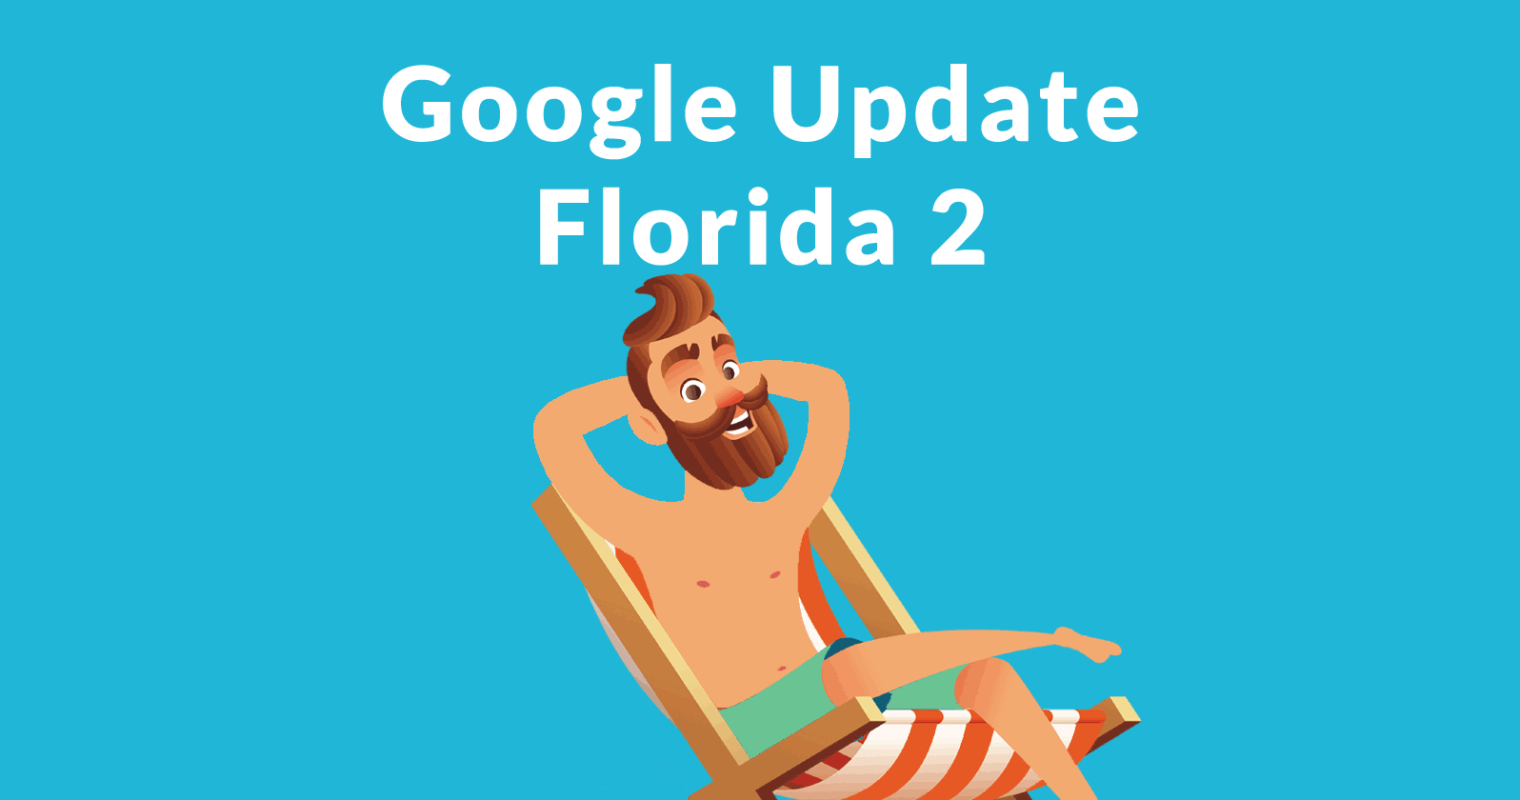 https://res.cloudinary.com/dpyy9uysx/image/upload/v1552655012/seo/google-update-florida-seowarriors-news.png